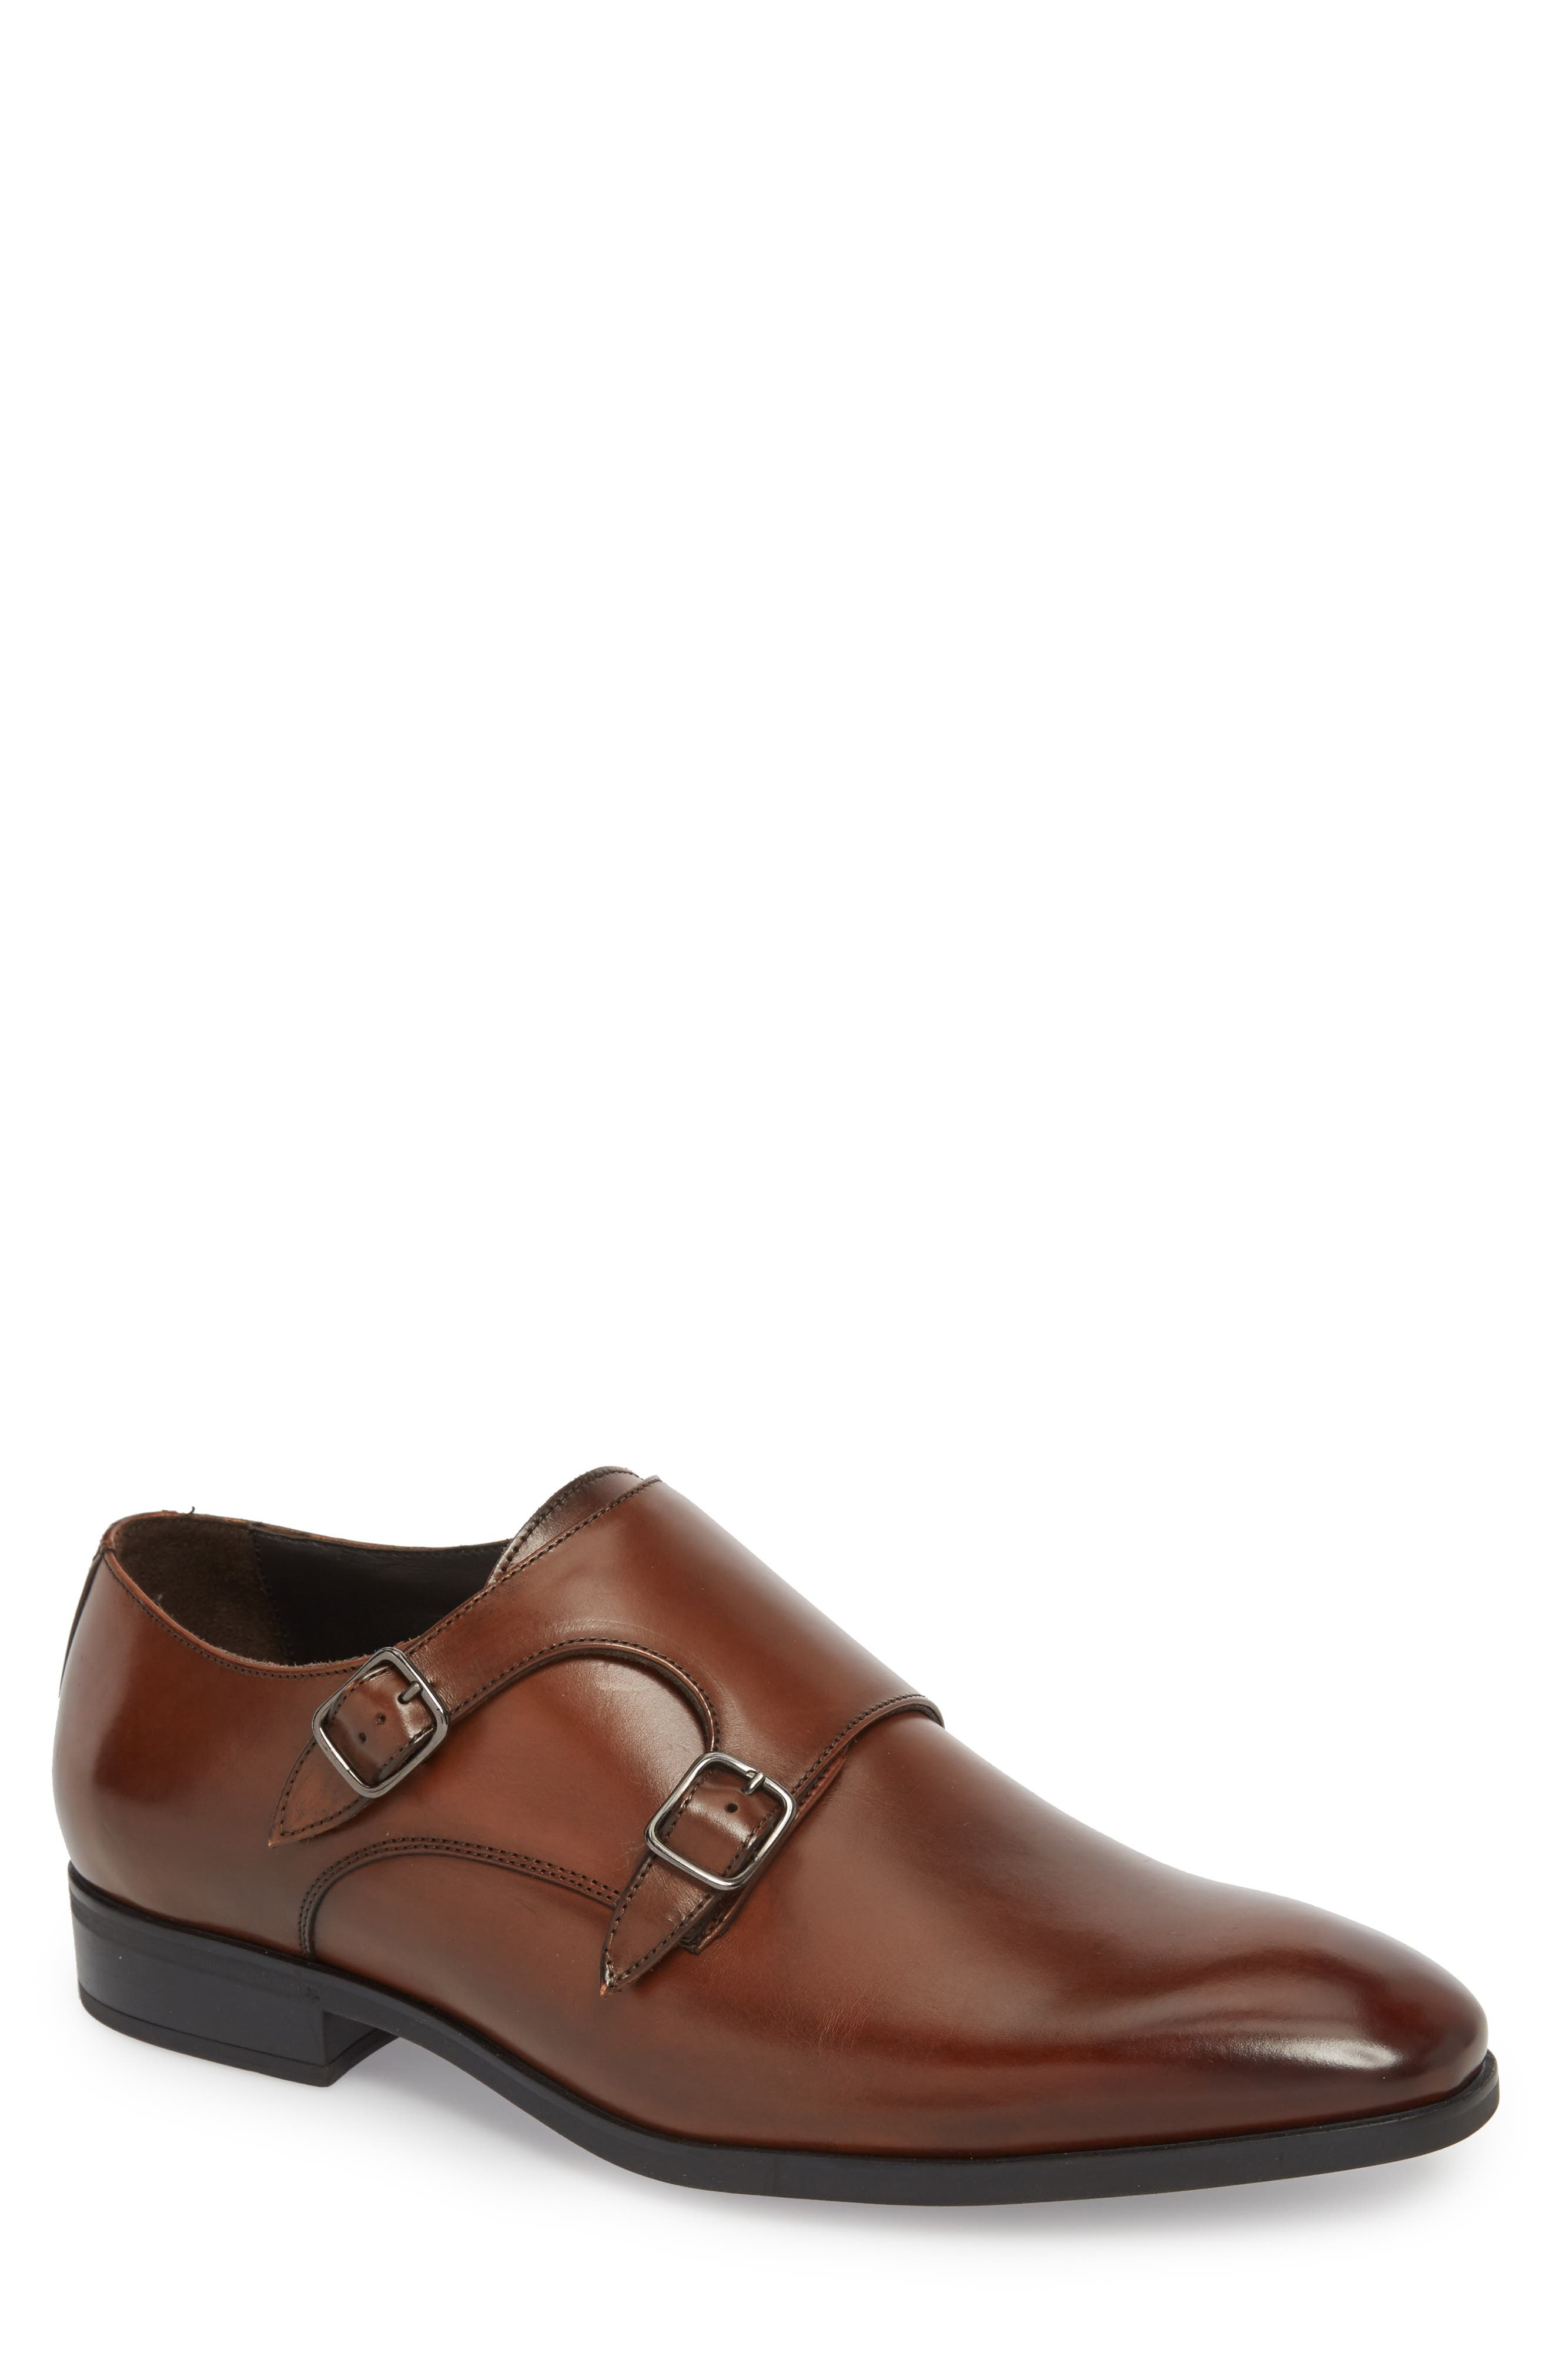 TO BOOT NEW YORK, Benjamin Double Monk Strap Shoe, Main thumbnail 1, color, TMORO LEATHER